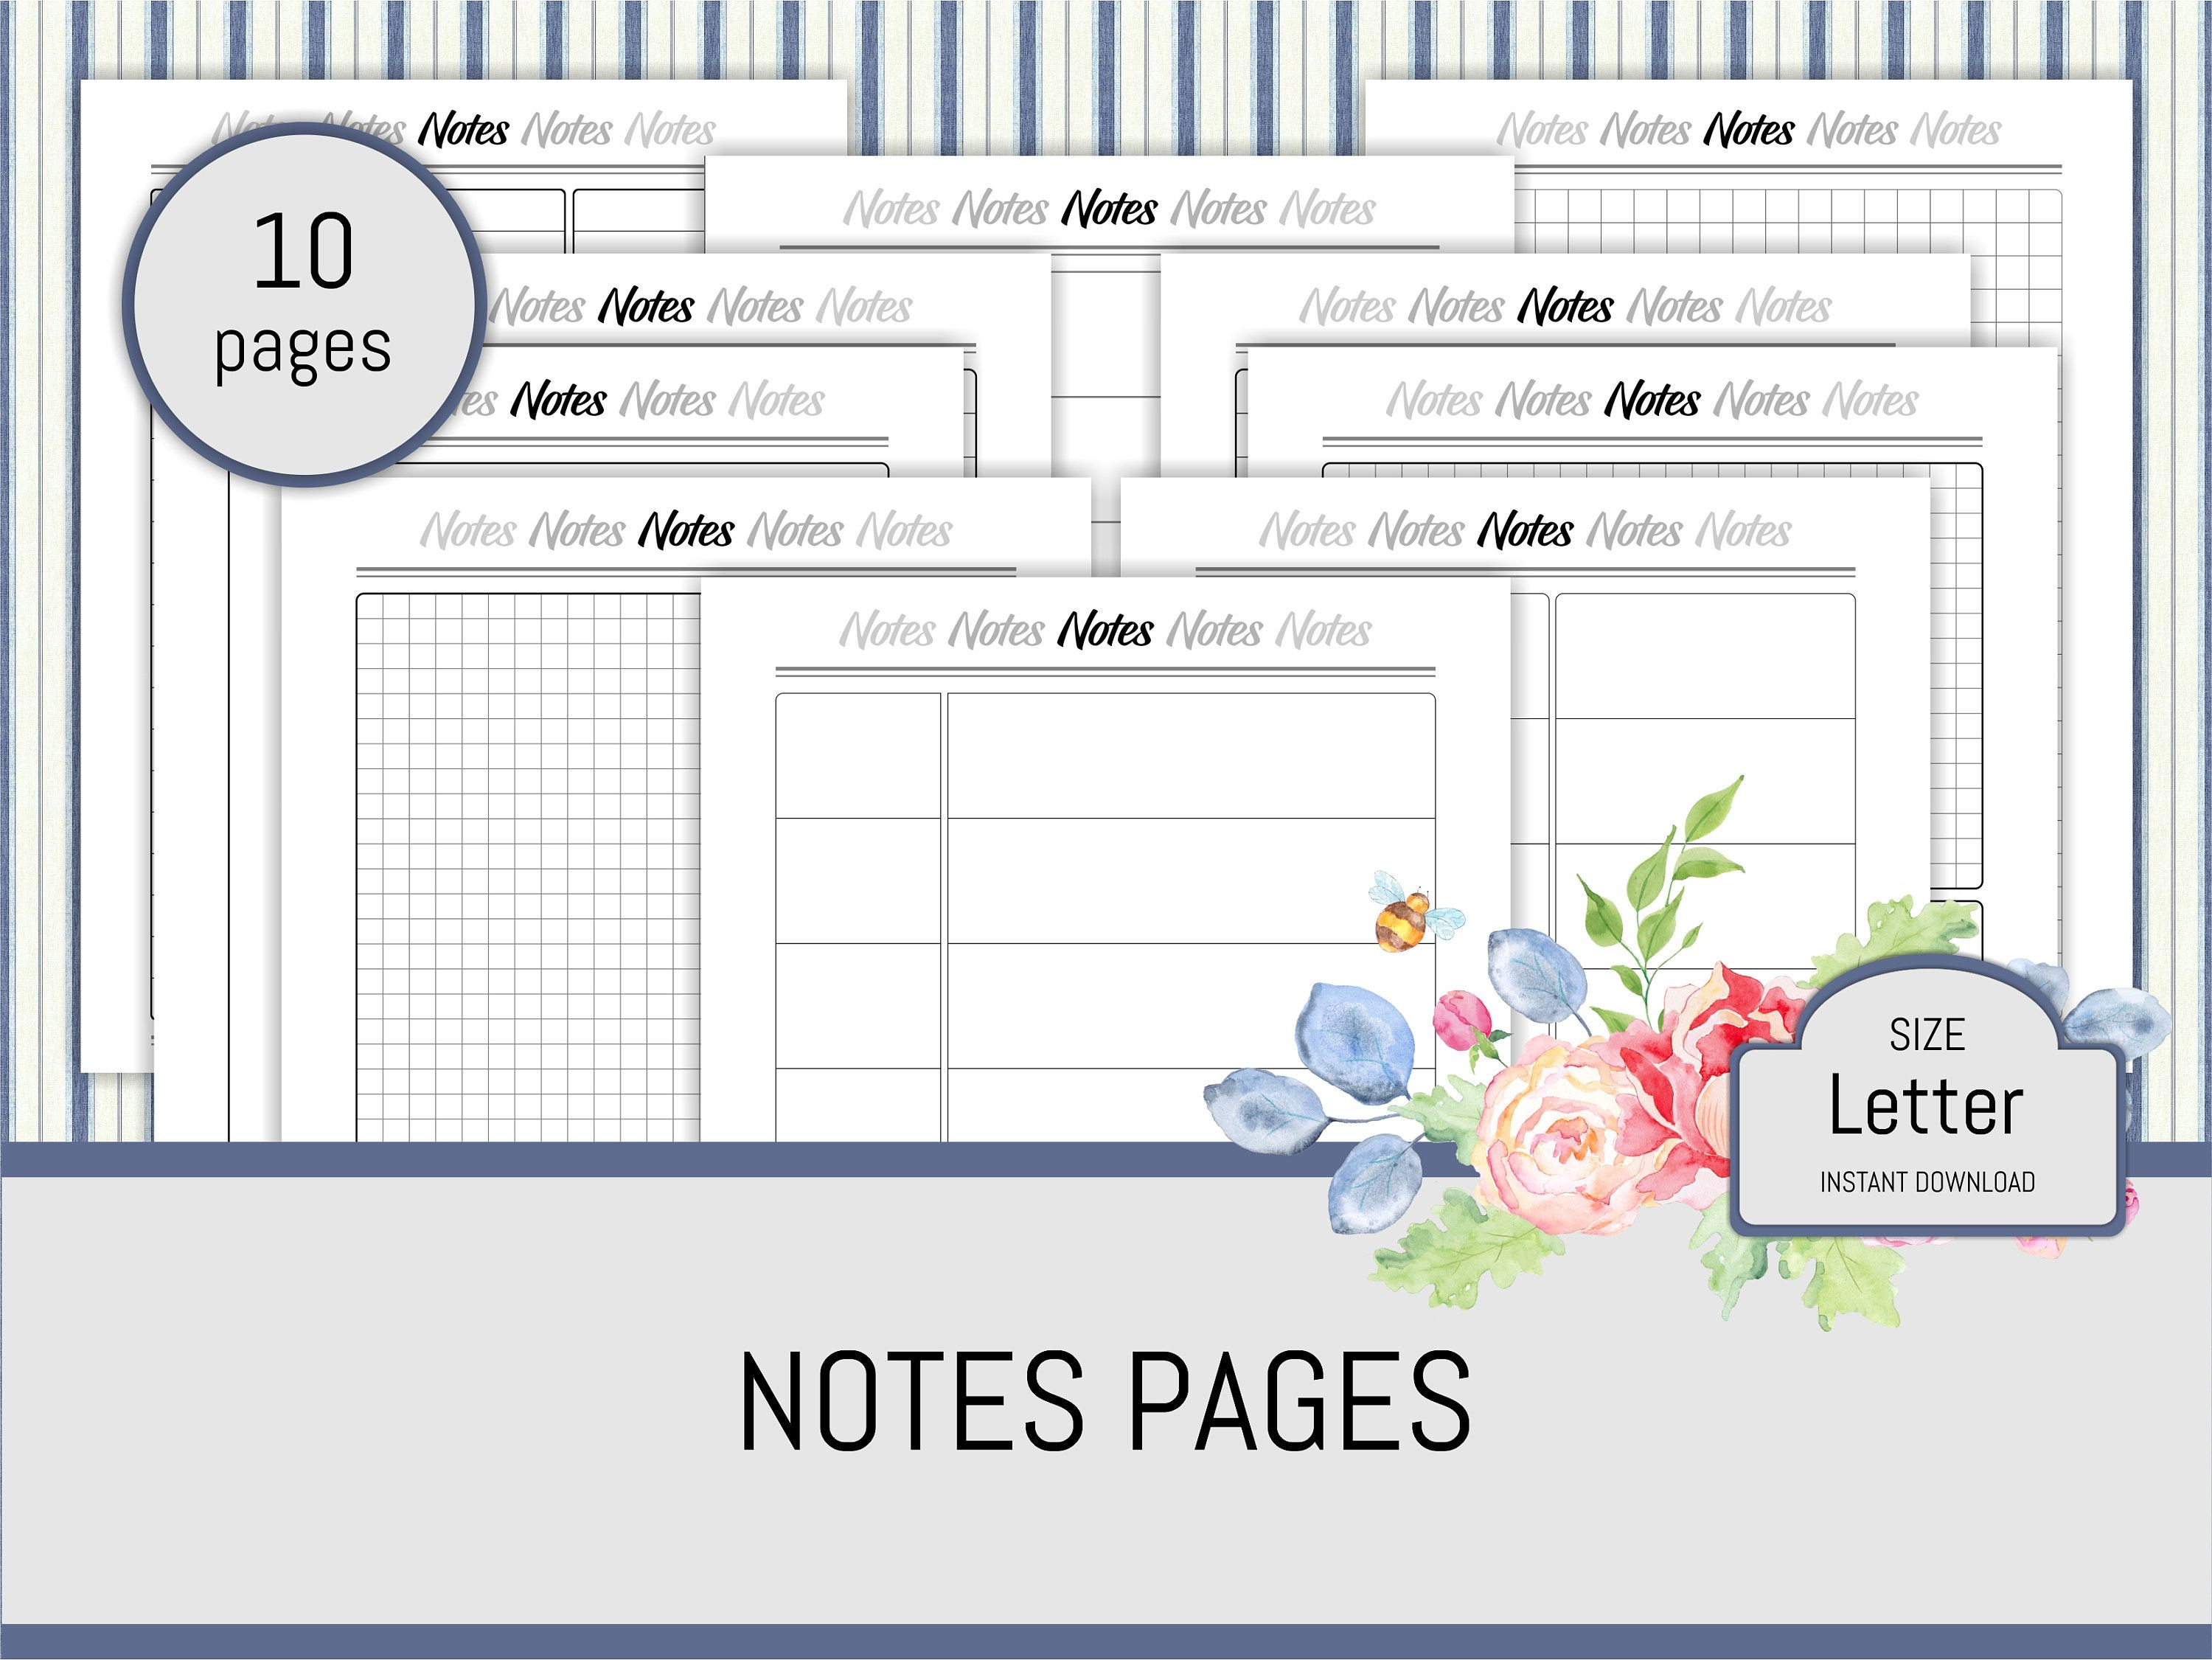 Notes Pages Worksheet Printable Planner Refill Notes